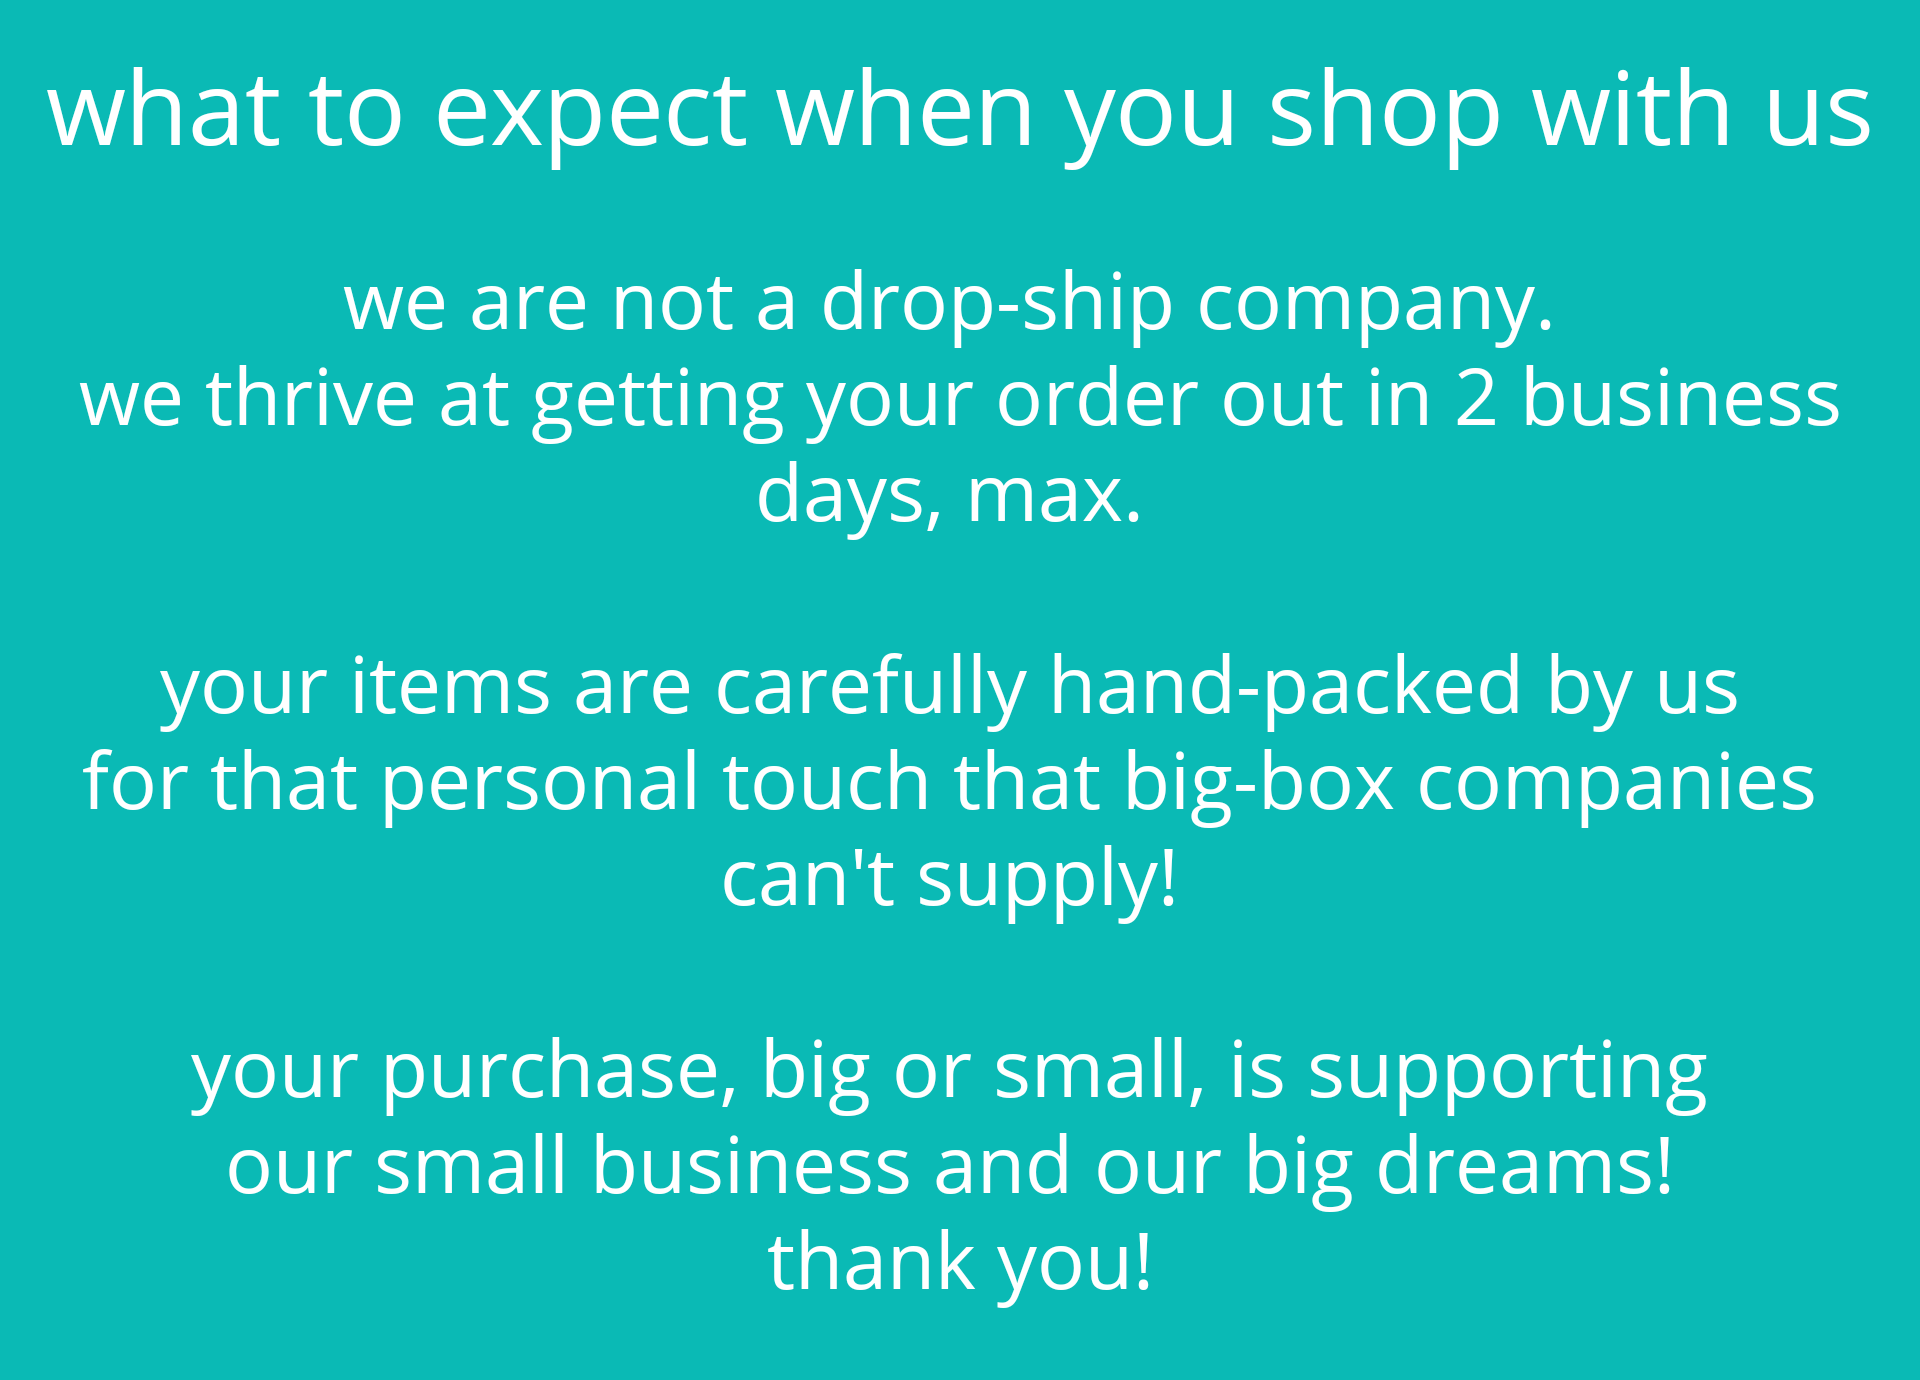 What to expect when you shop with us. We are not a drop-ship company. We thrive at getting your order out in 2 business days, max. Your items are carefully hand-packed by us for that personal touch that big-box companies can't supply! Your purchase, big or small, is supporting our small business and our big dreams! Thank you!